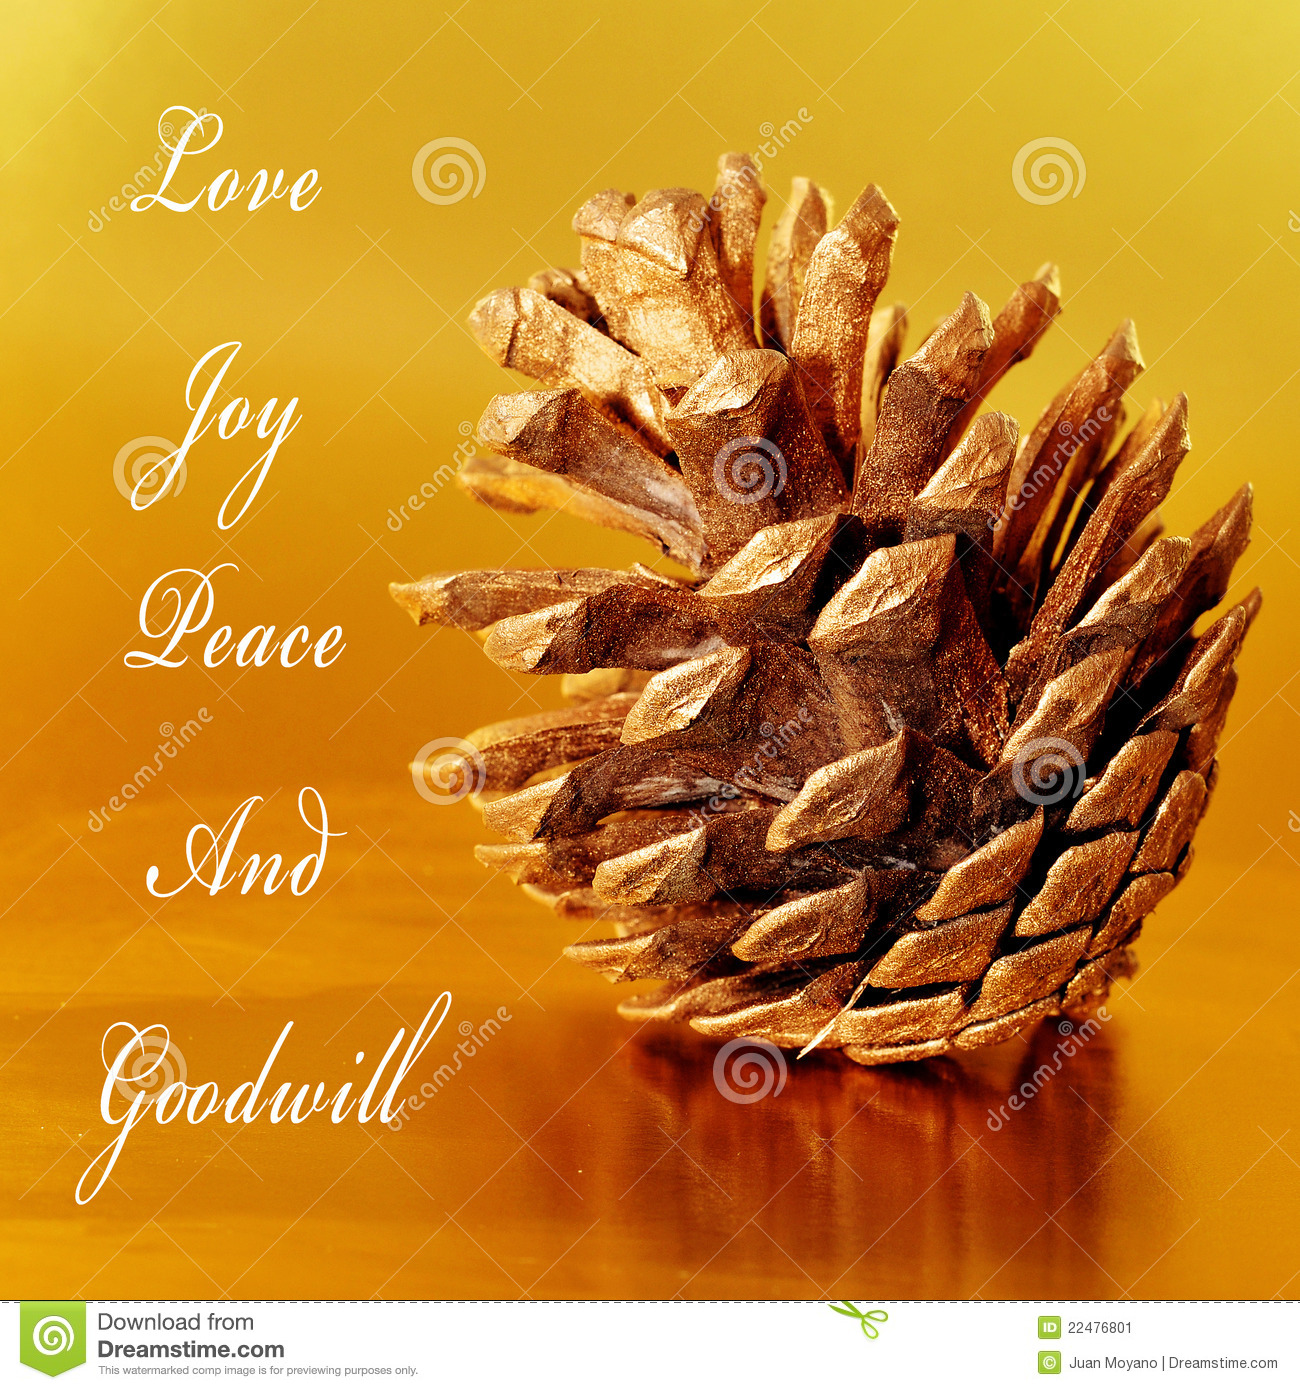 Love Joy Peace And Goodwill Stock Image Image 22476801